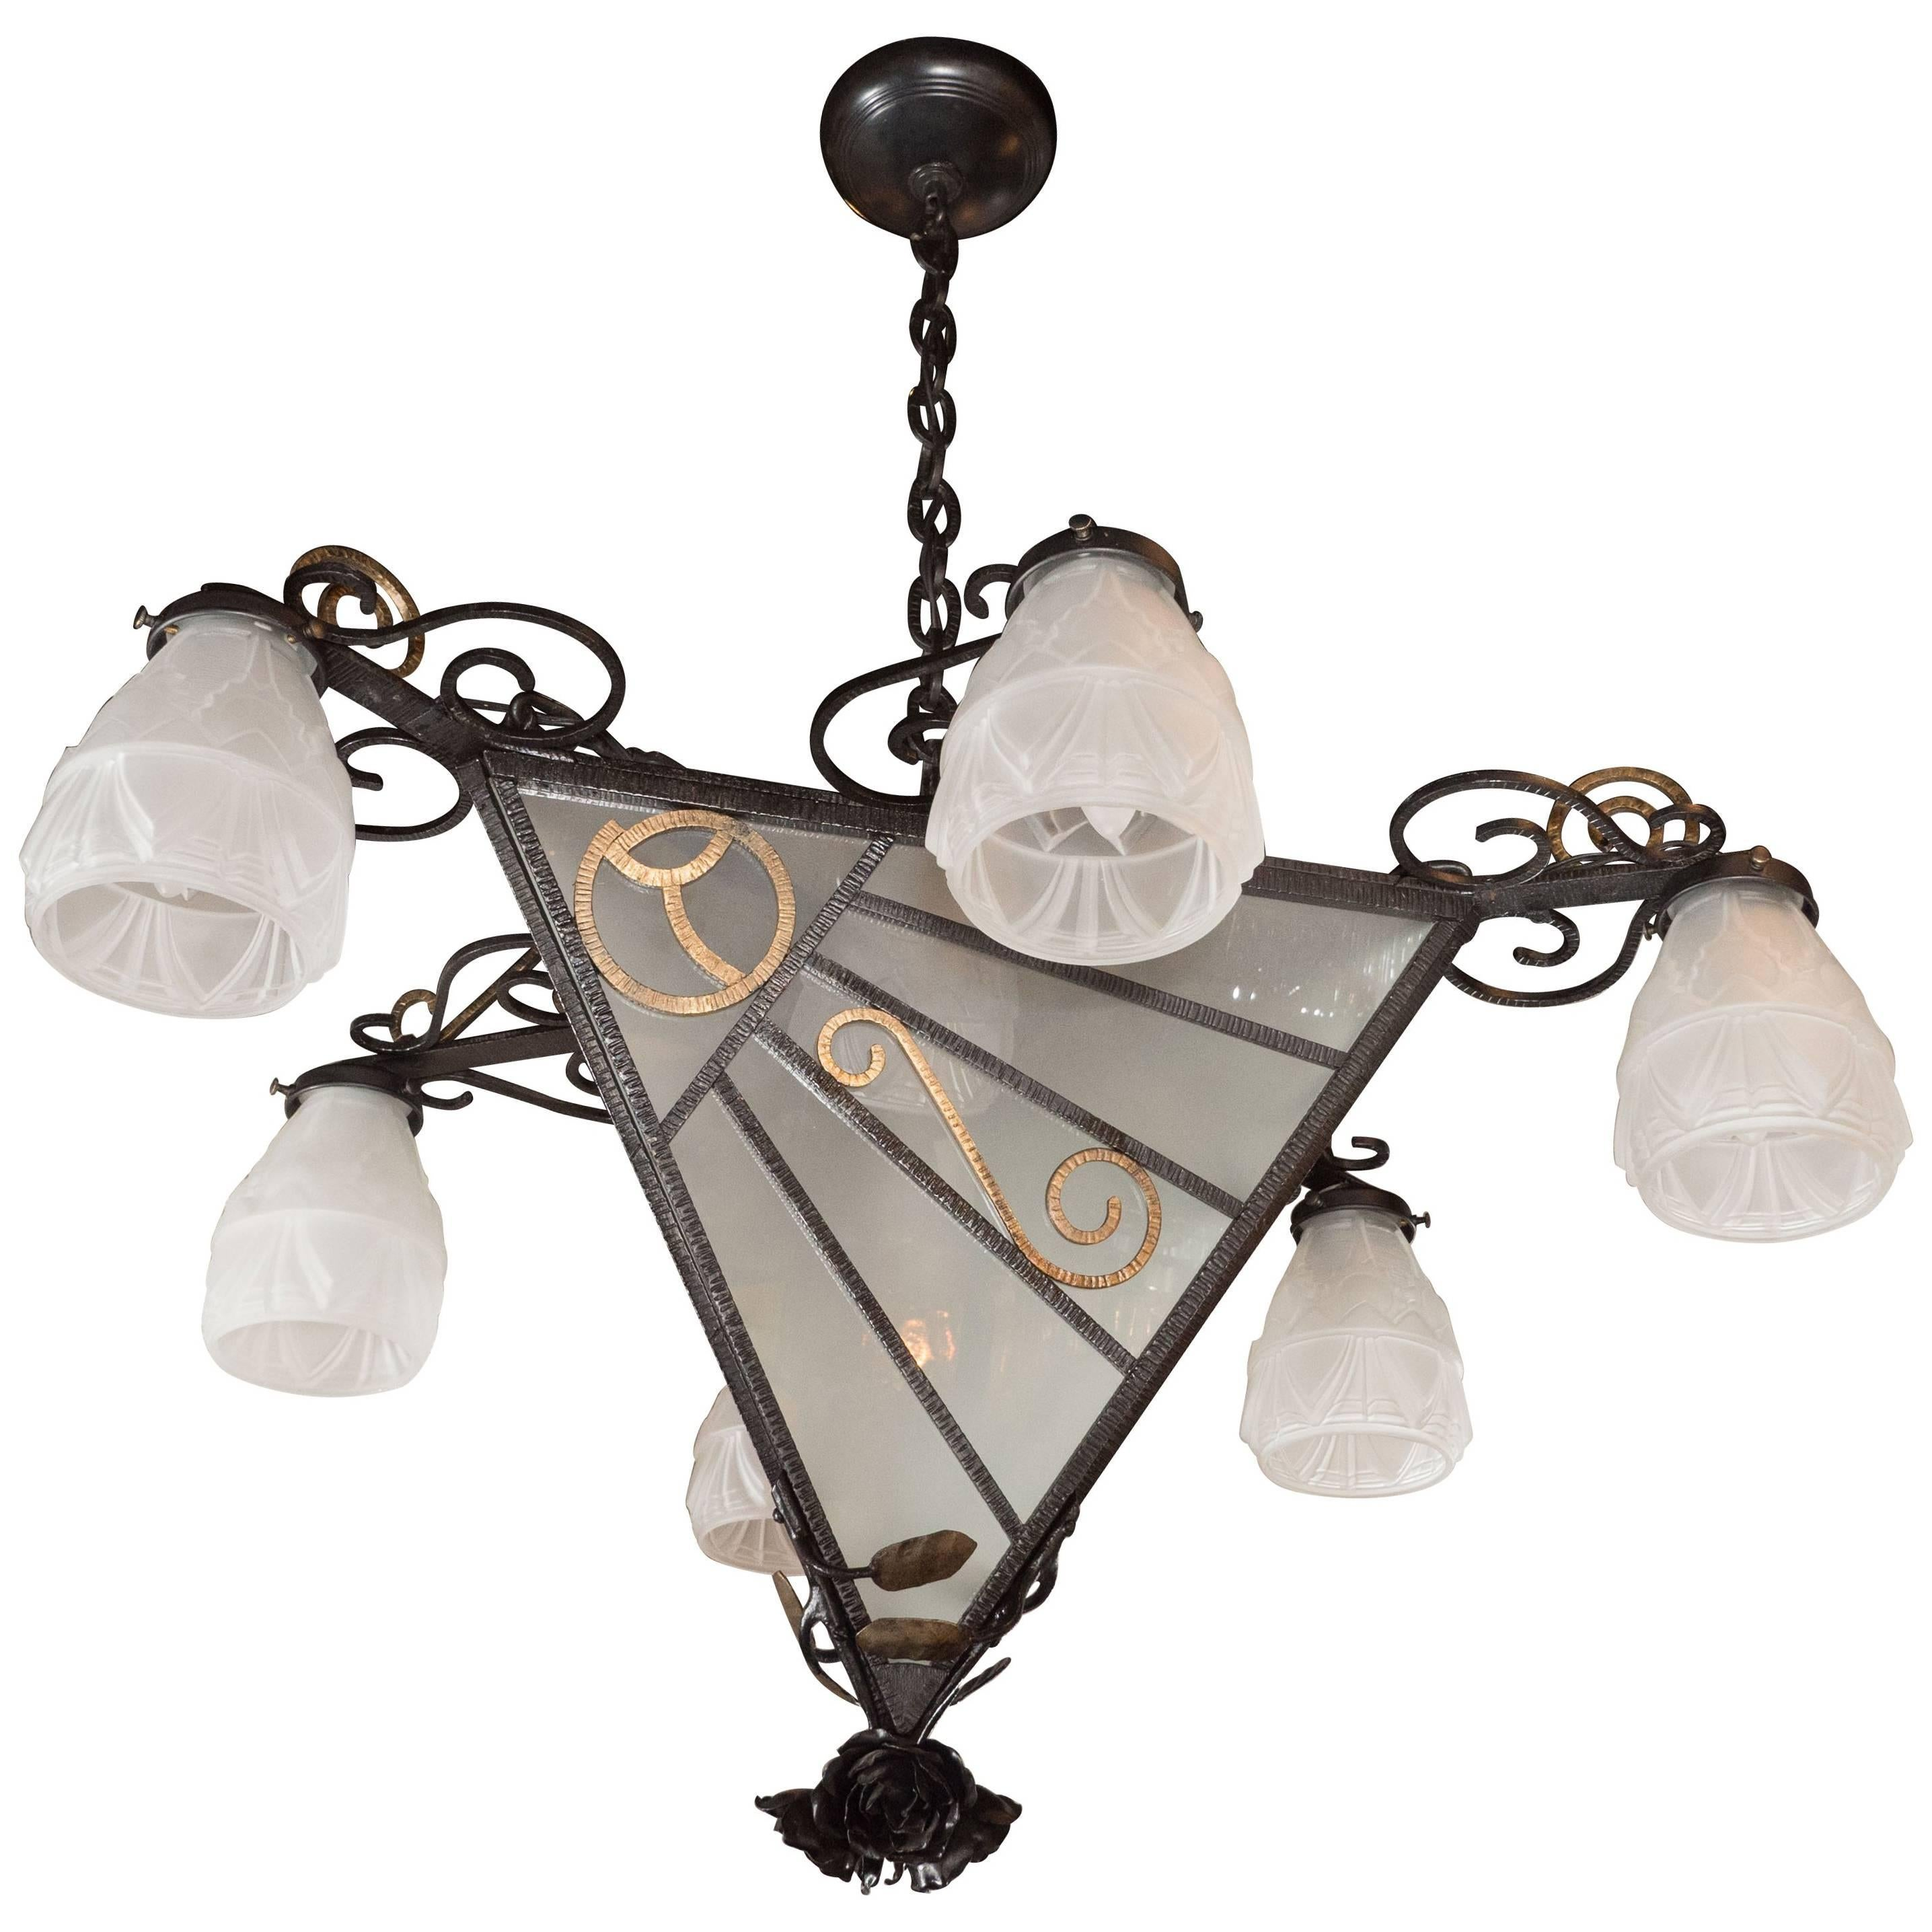 French Art Deco Wrought Iron Six-Arm Chandelier with Rose Finial